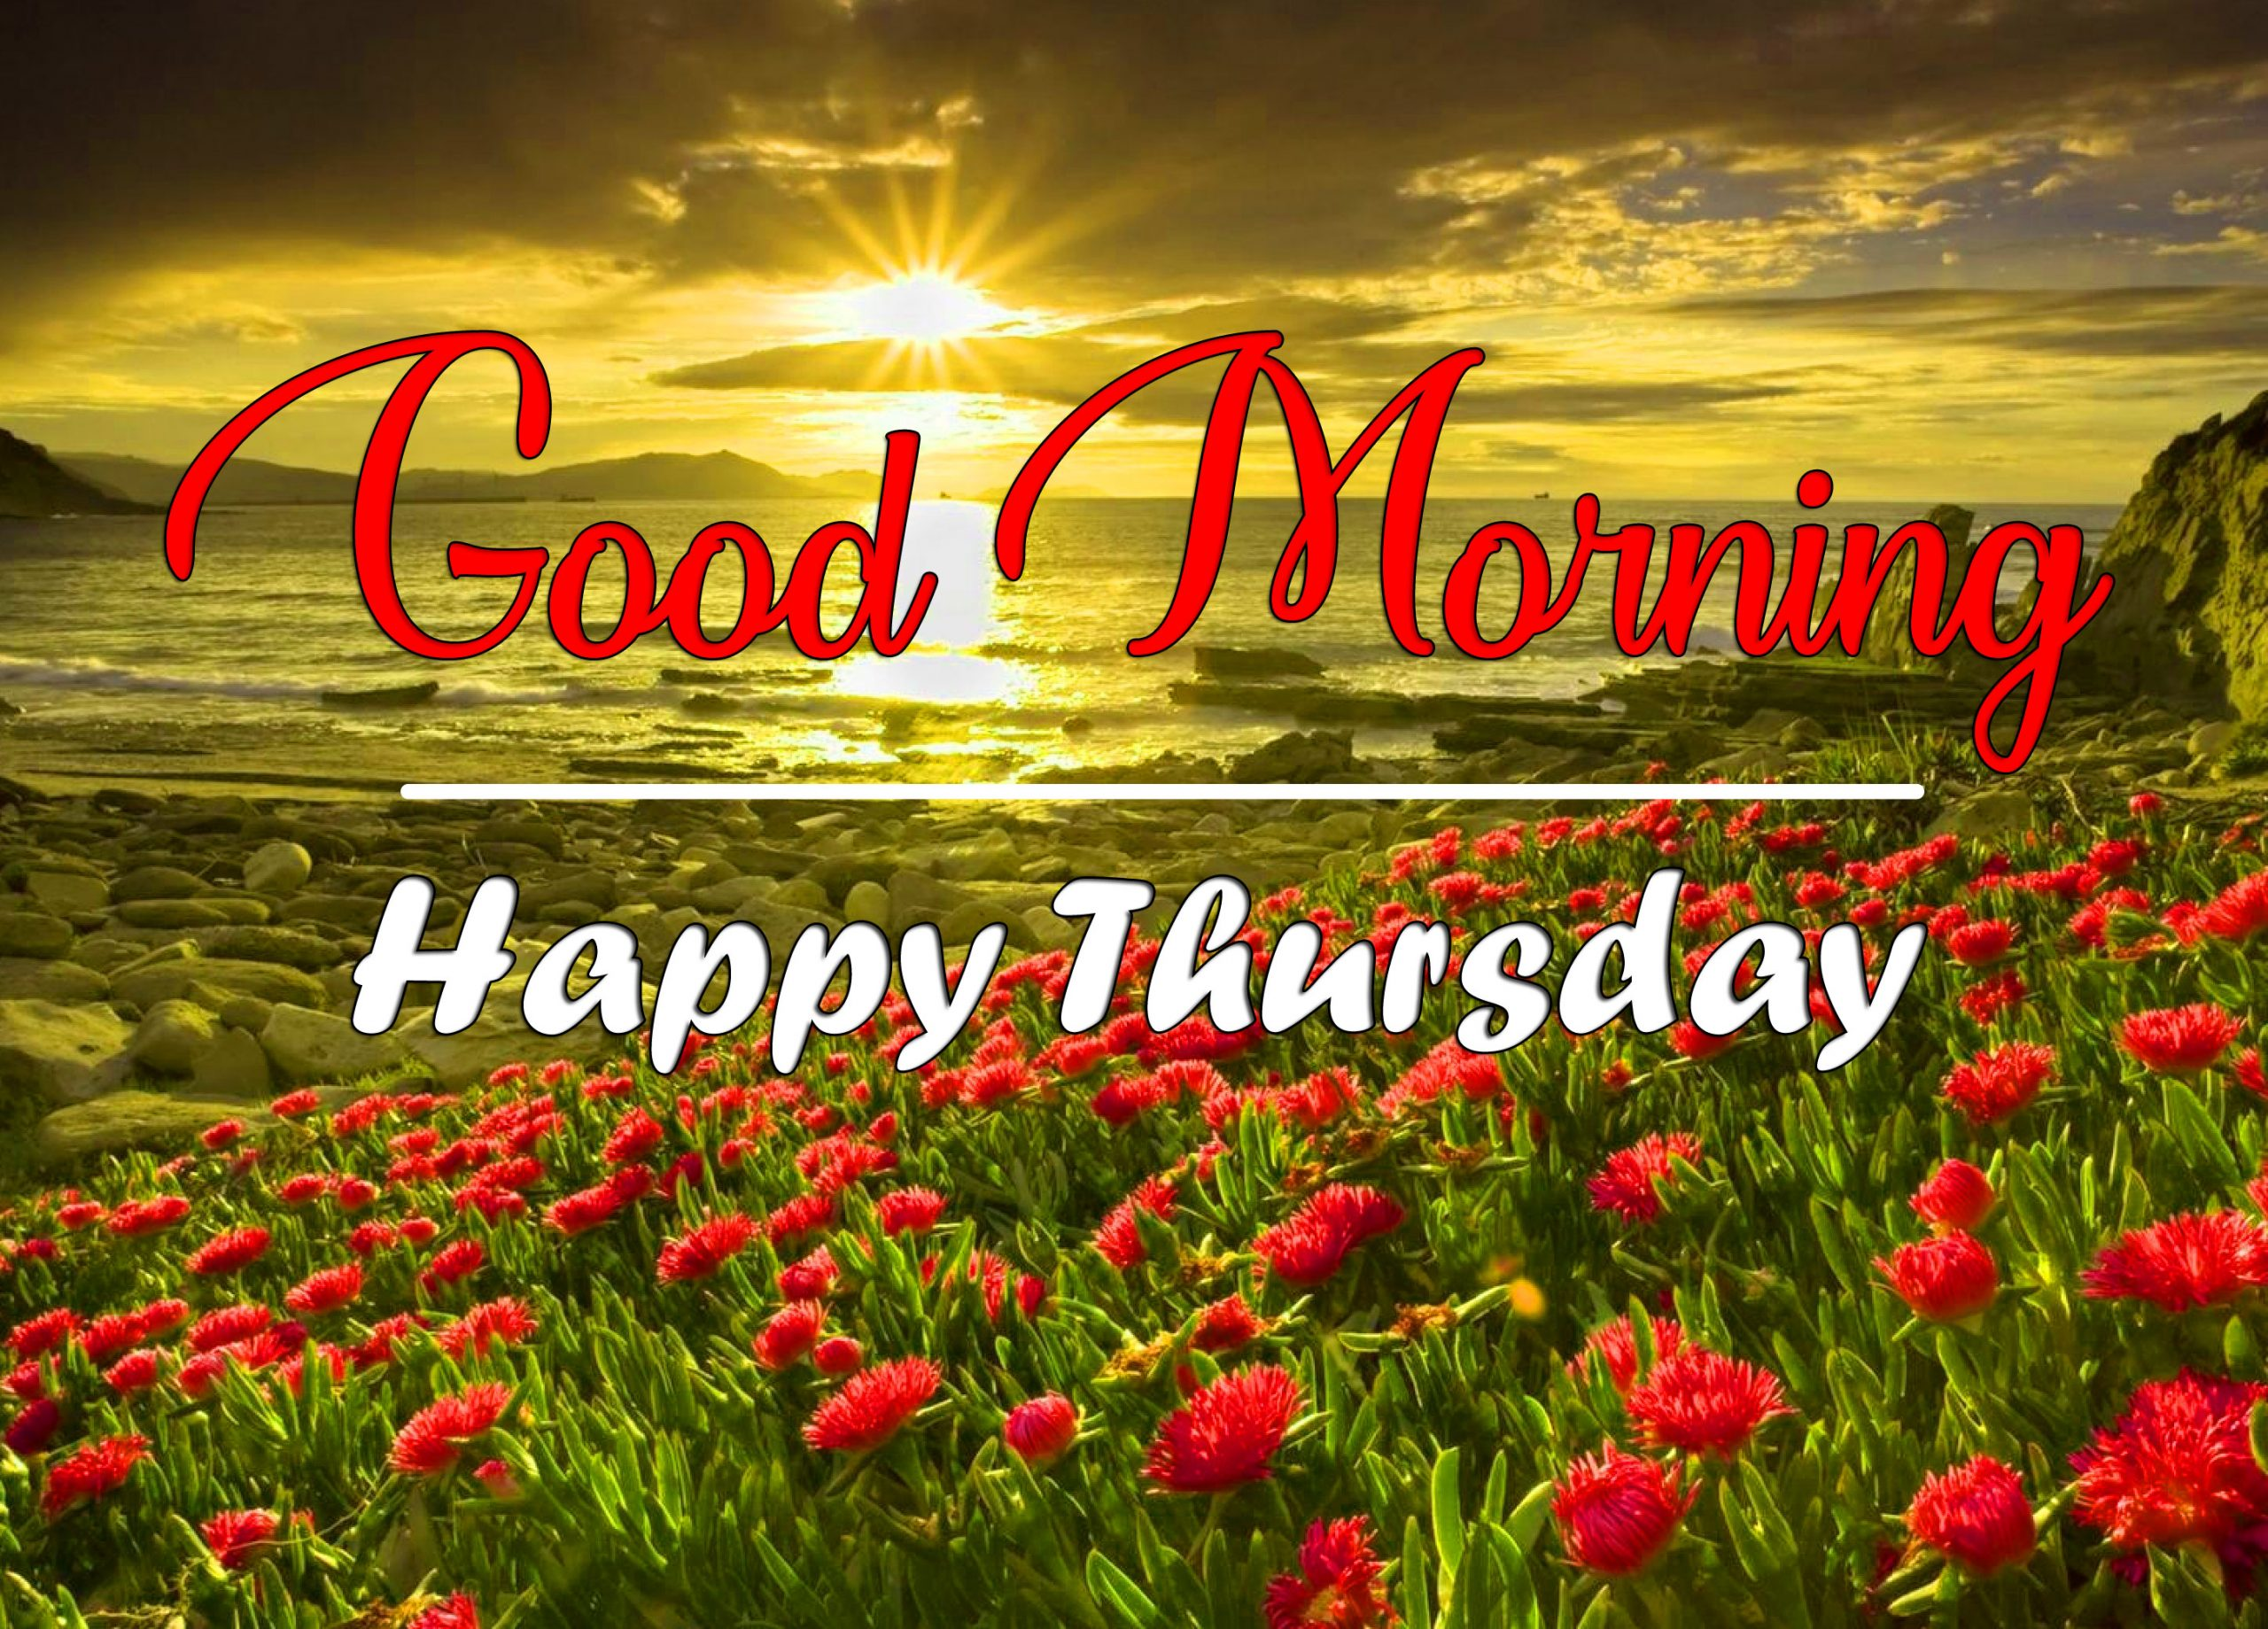 Nature HD thursday morning Images 2